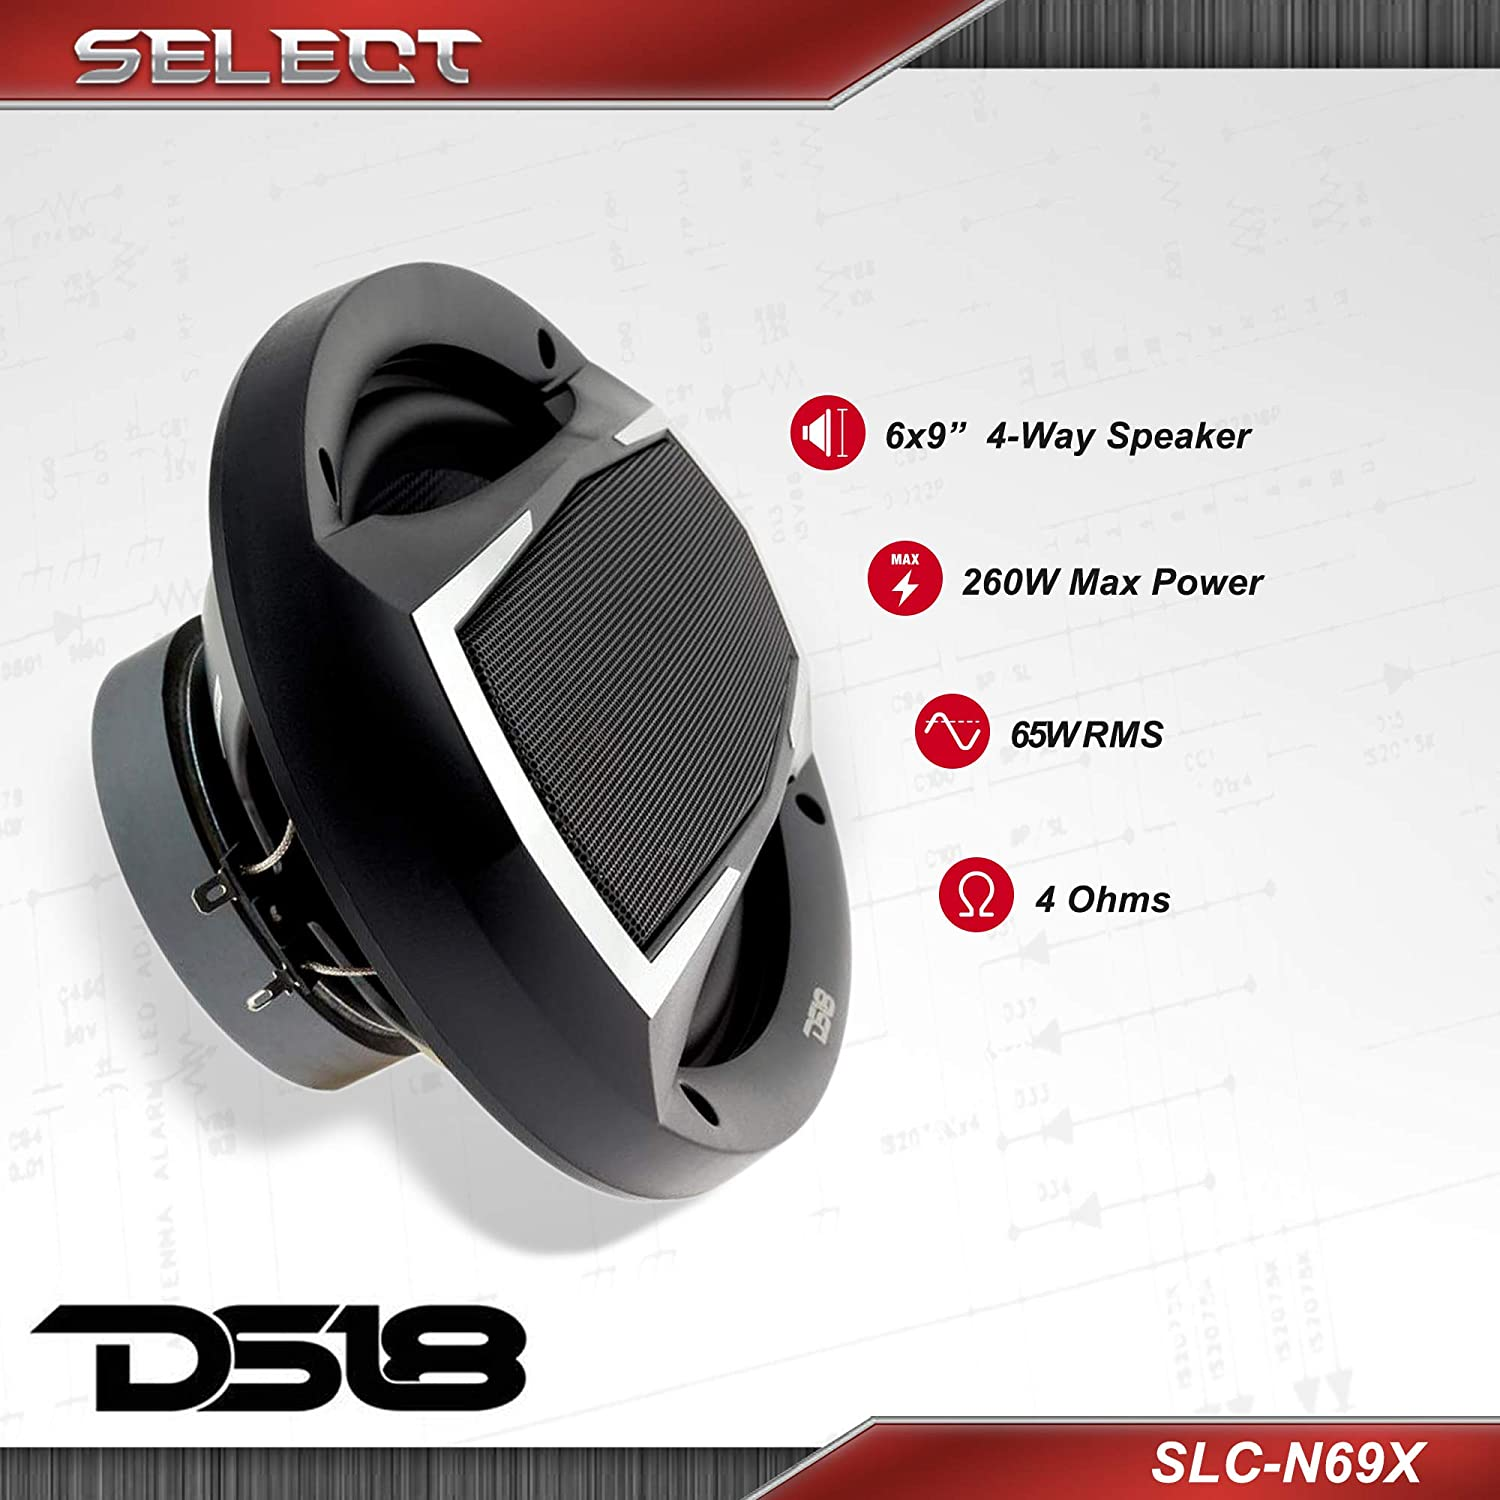 DS18 SLC-N69X Coaxial Speaker Removable Cover Included 65W RMS Midrange and Tweeters in one 4-Way Speaker 6x9 260W Max Power Woofer SELECT Speakers Provide Undiscovered Value 2 Speakers